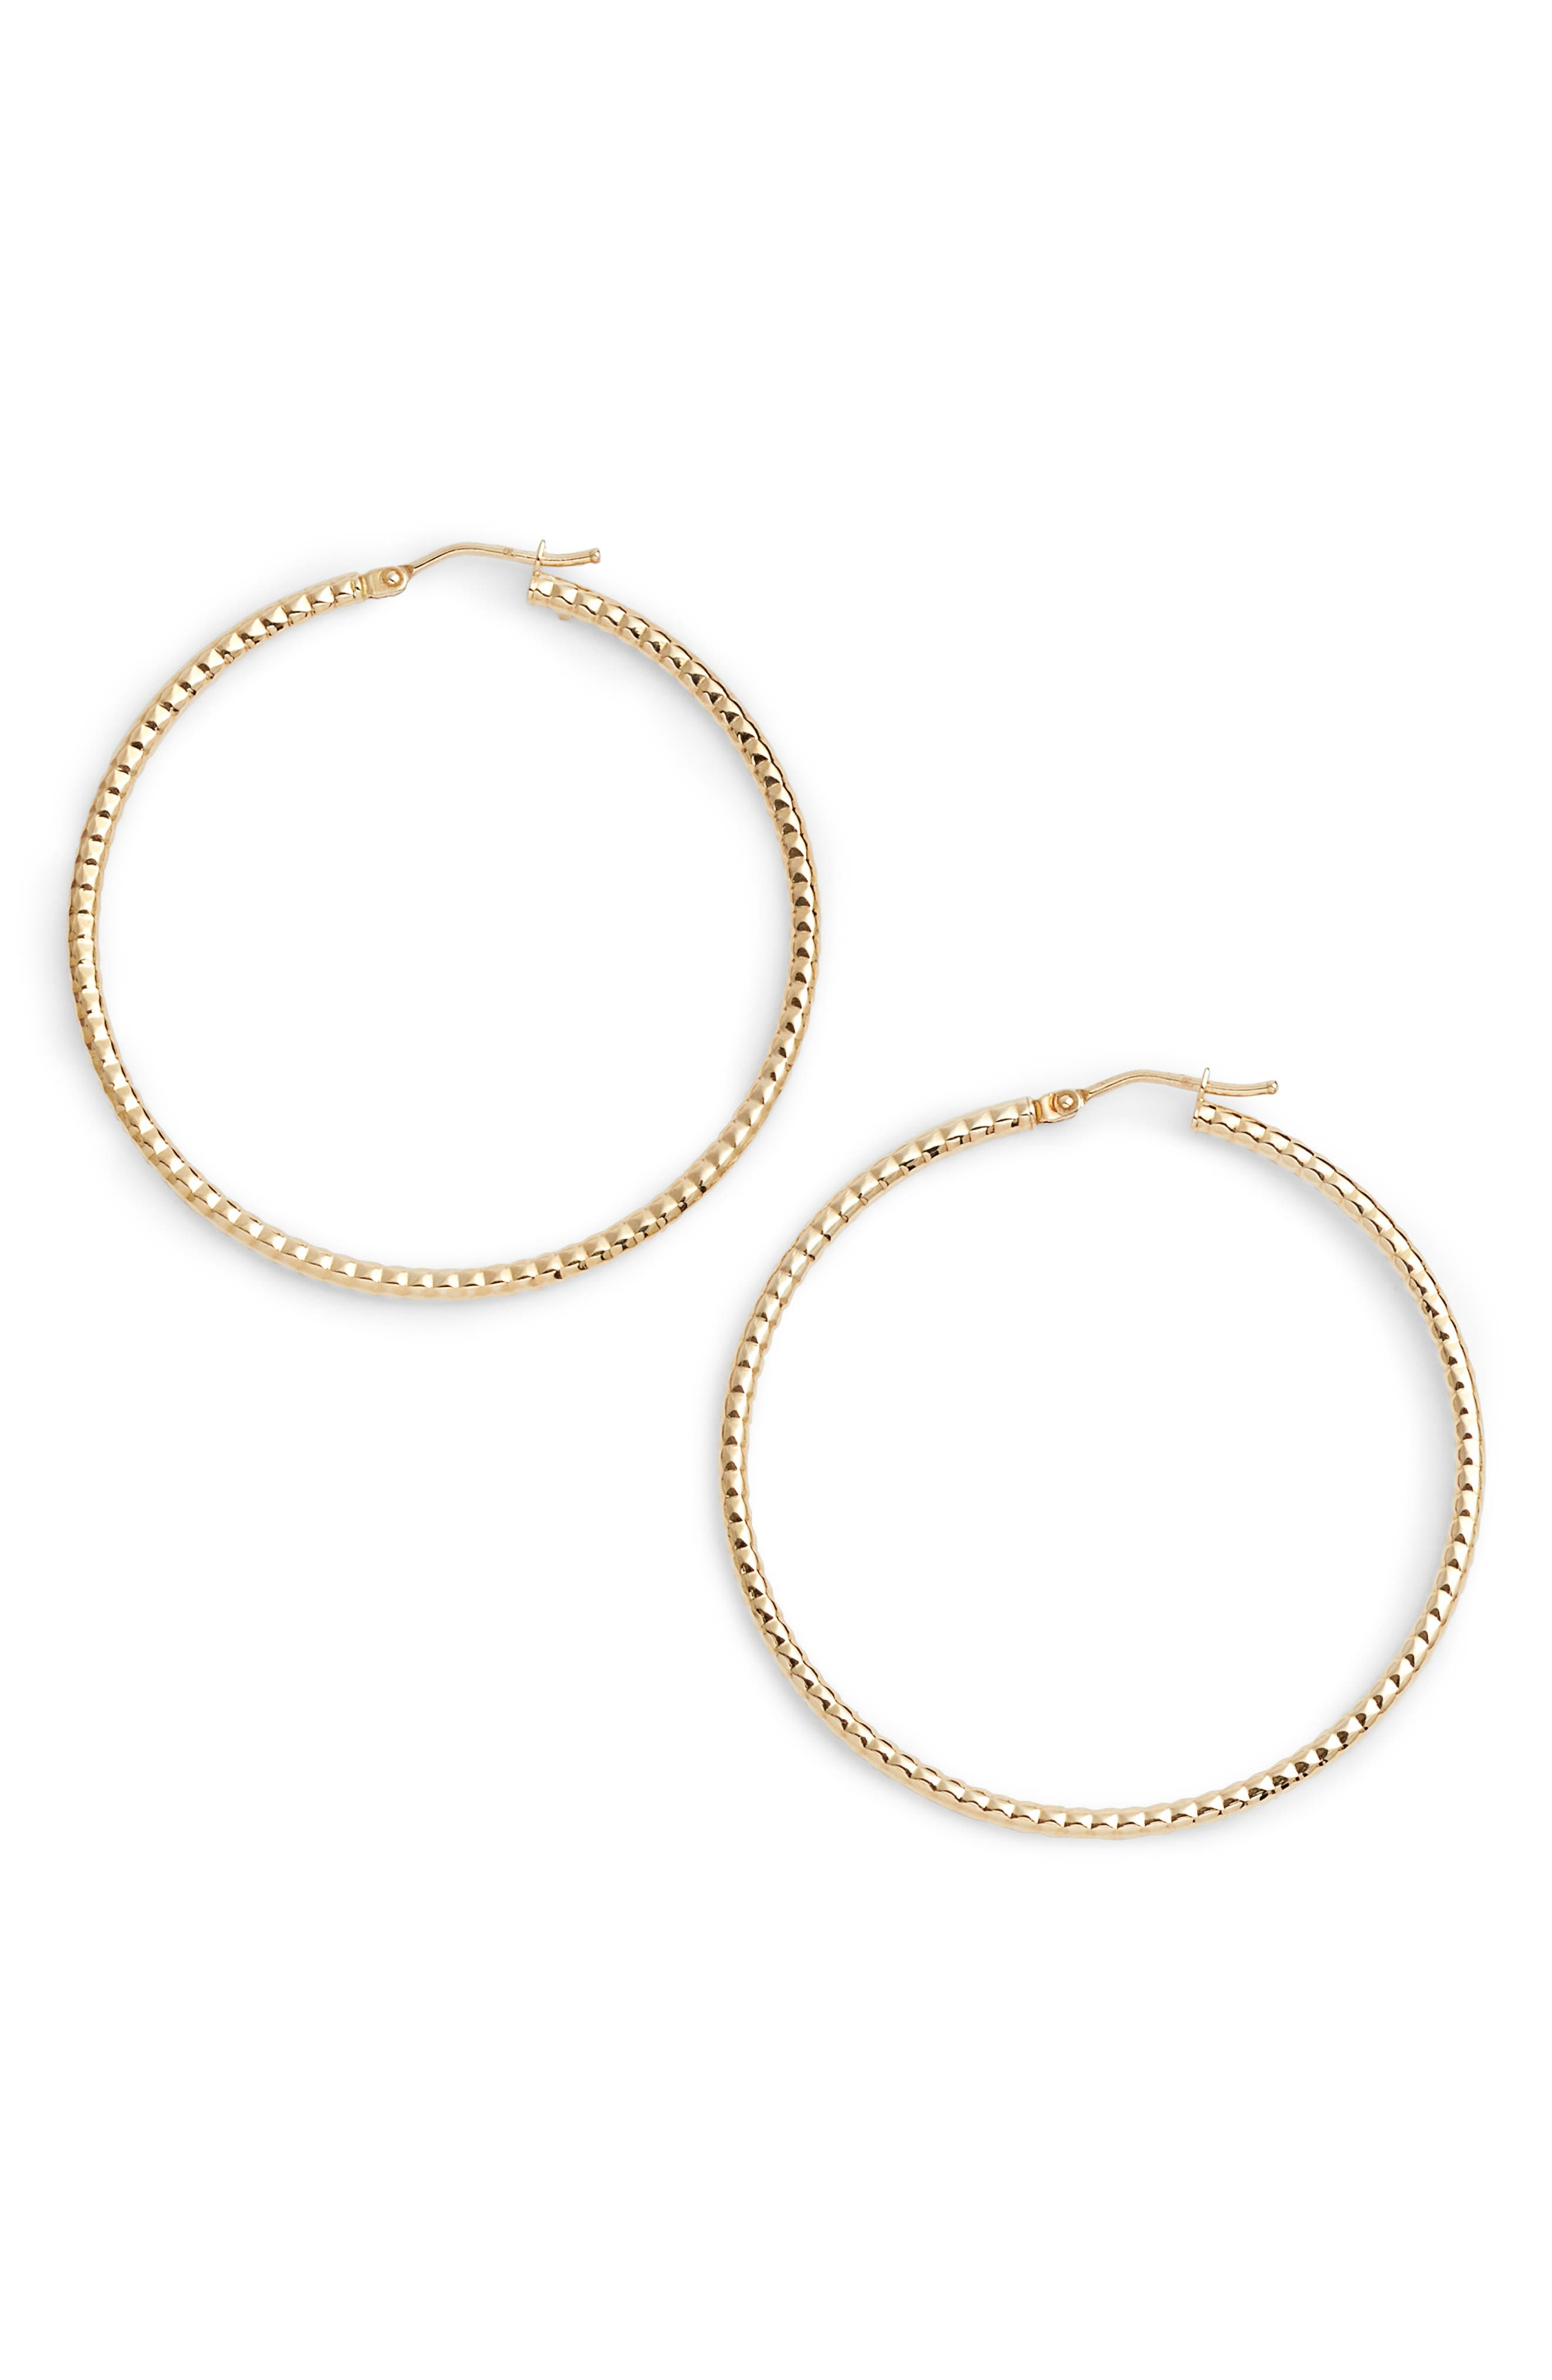 Textured Hoop Earrings,                         Main,                         color, Yellow Gold